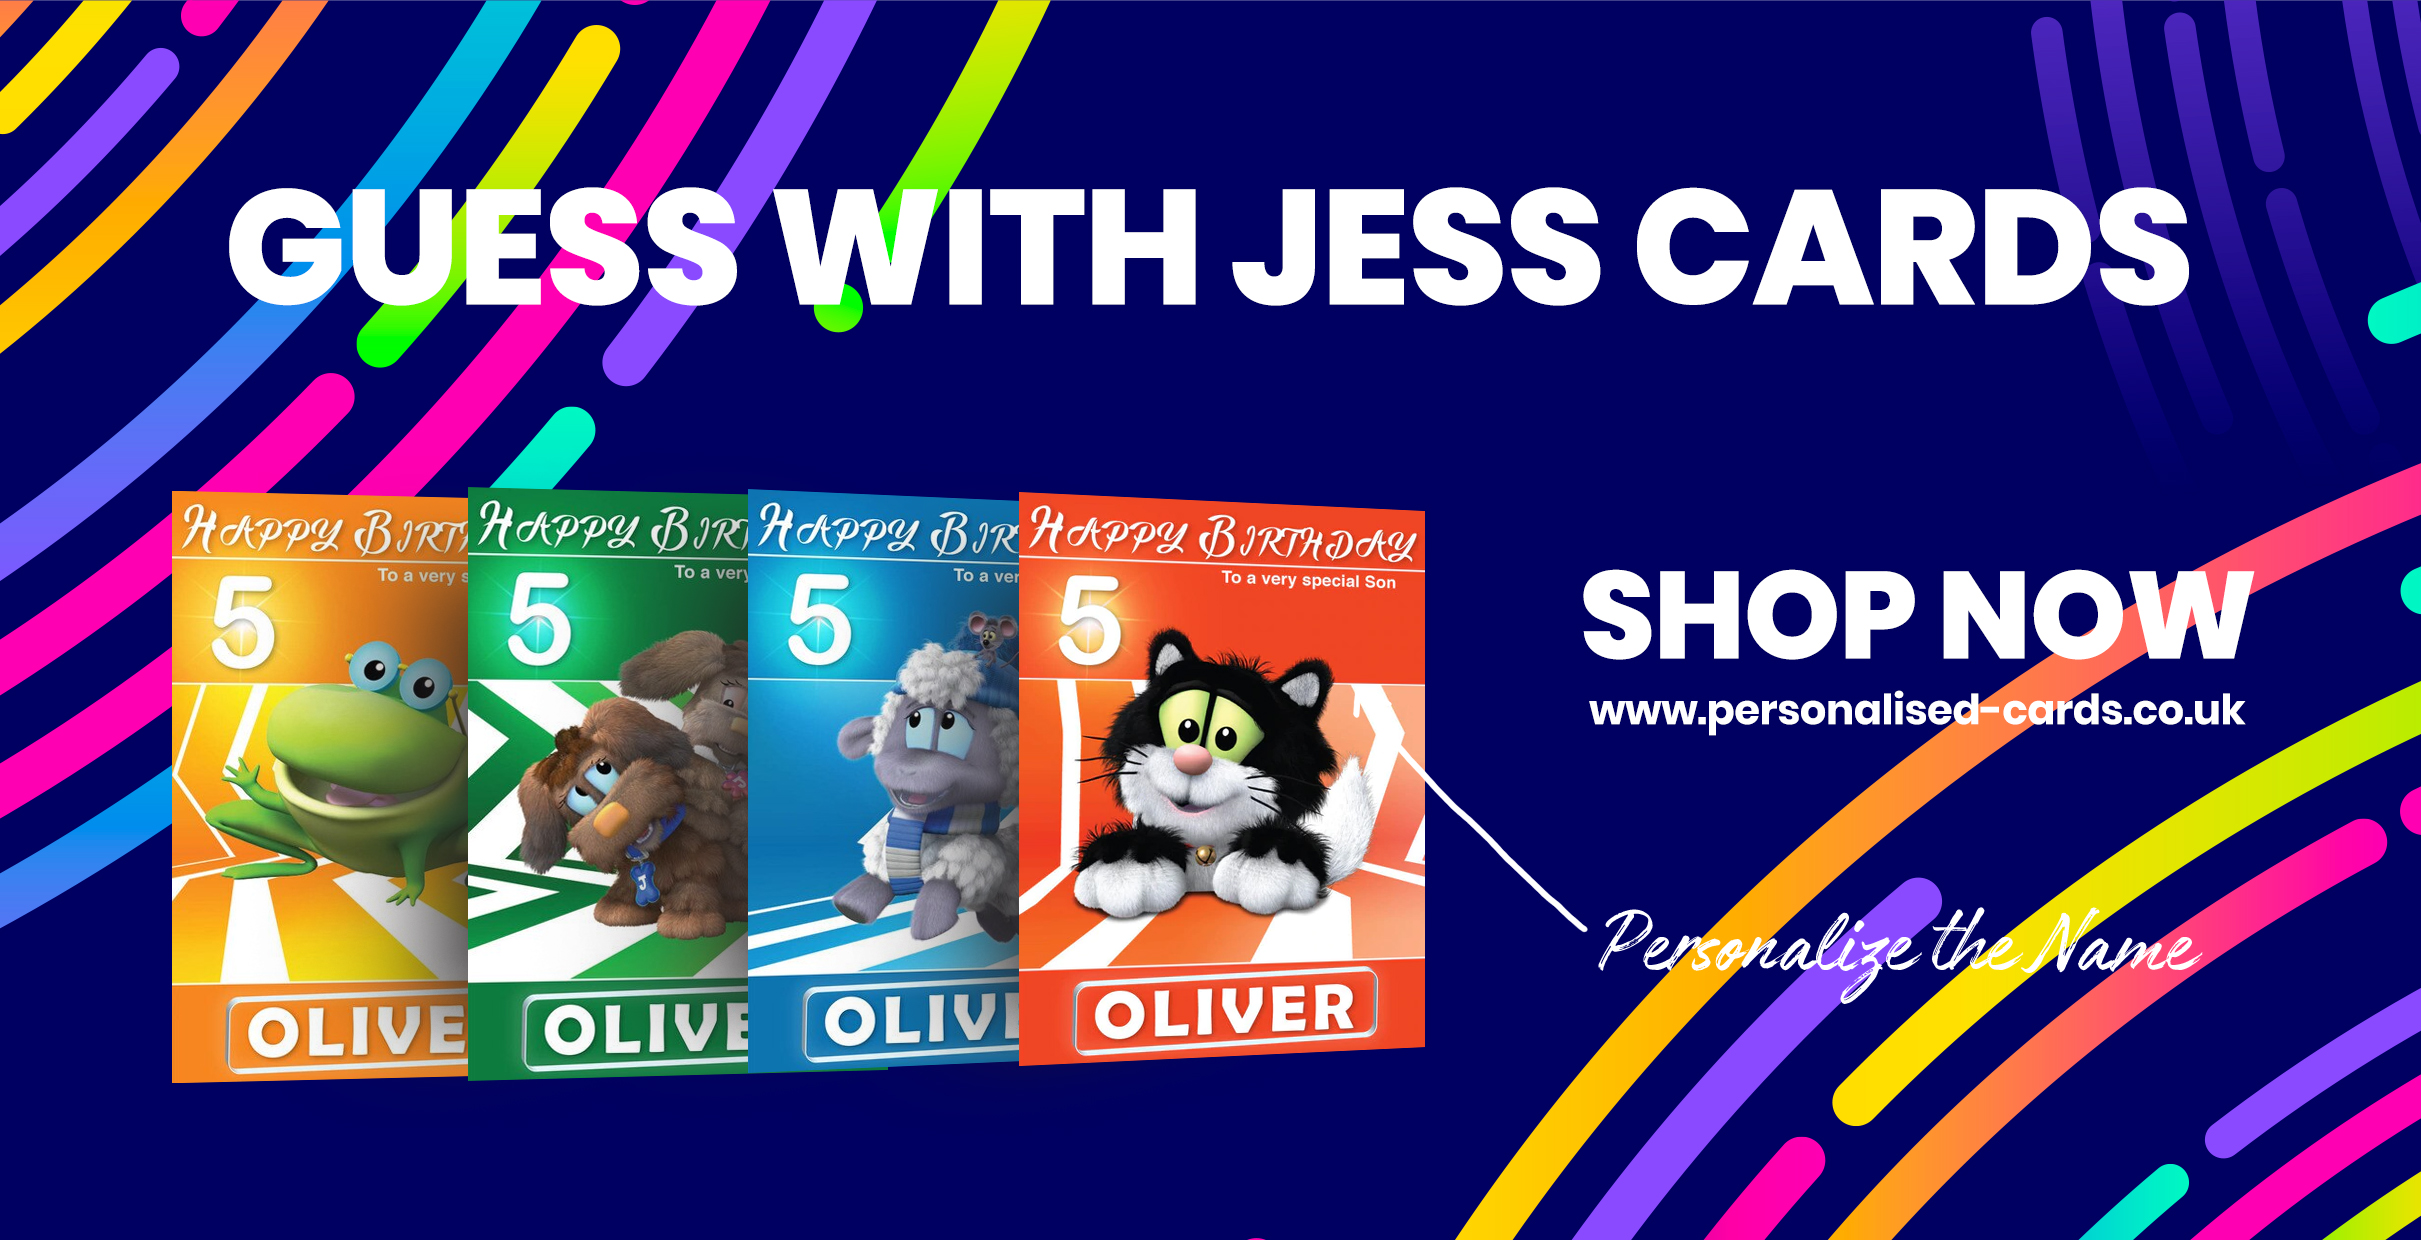 guess-with-jess-cards.jpg